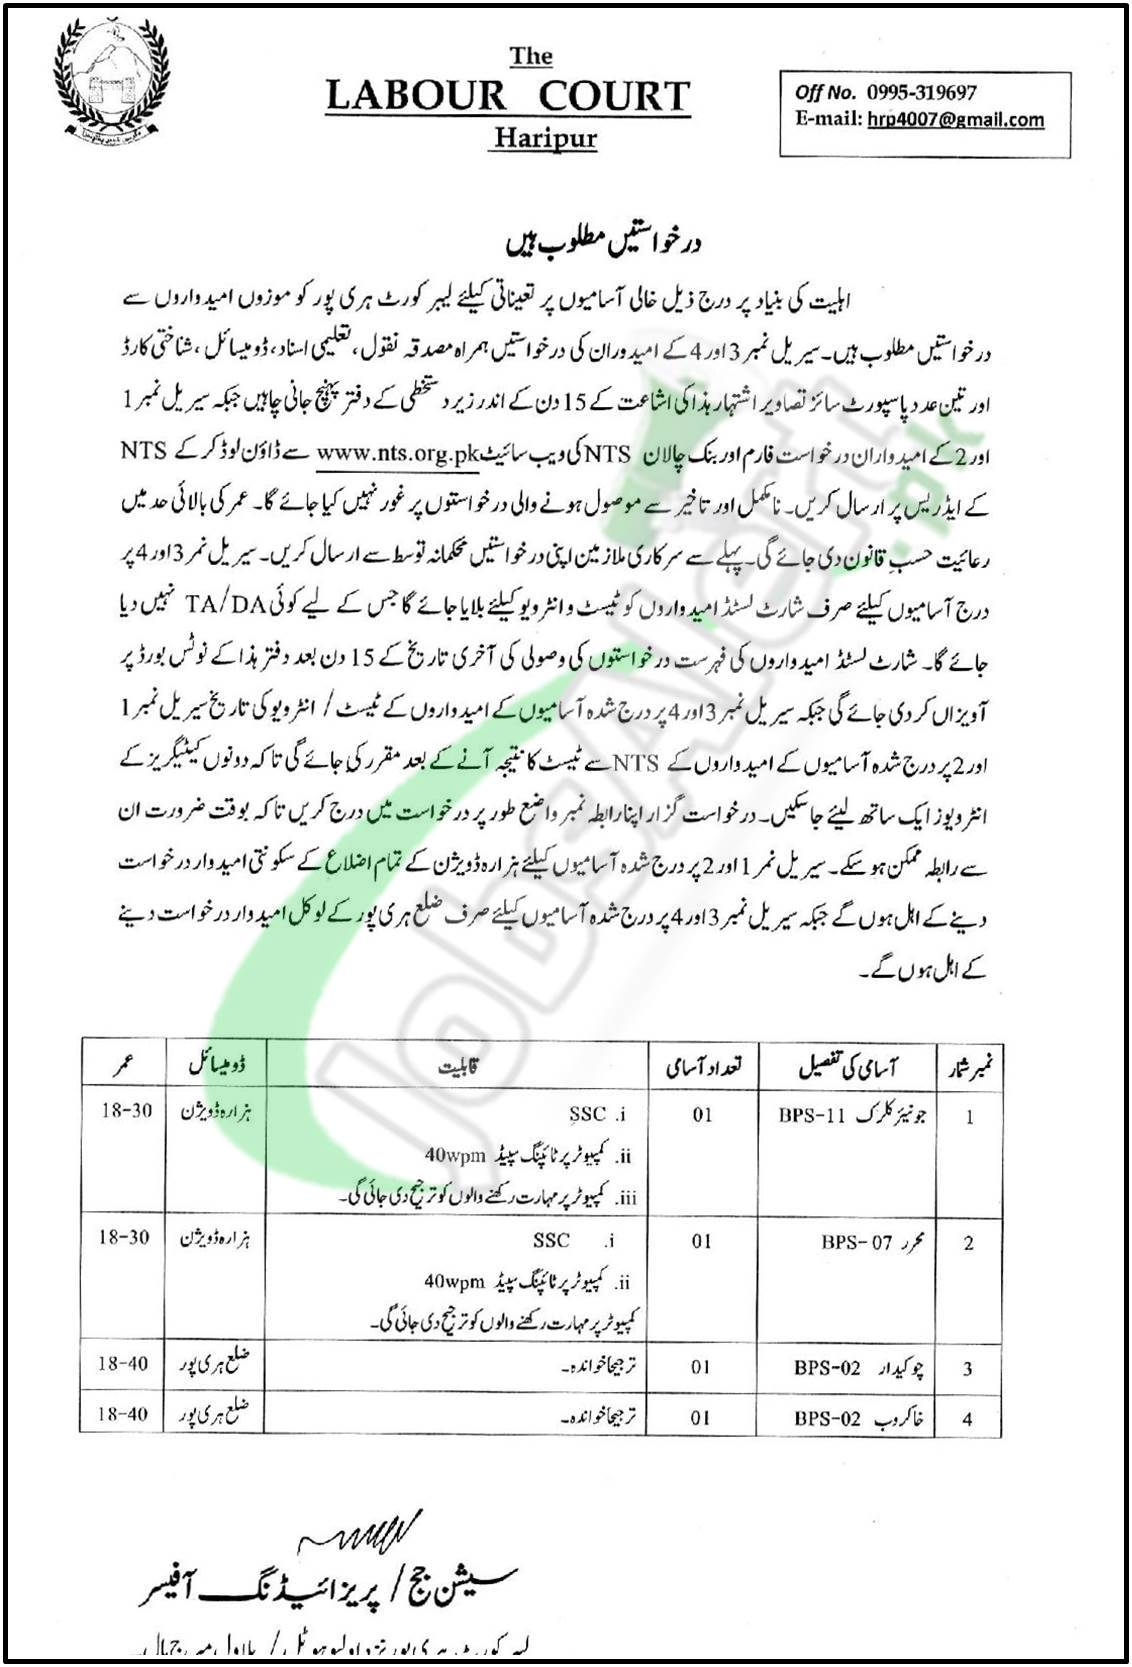 Labour Court Haripur Jobs 2018 NTS Application Form Download Online ...